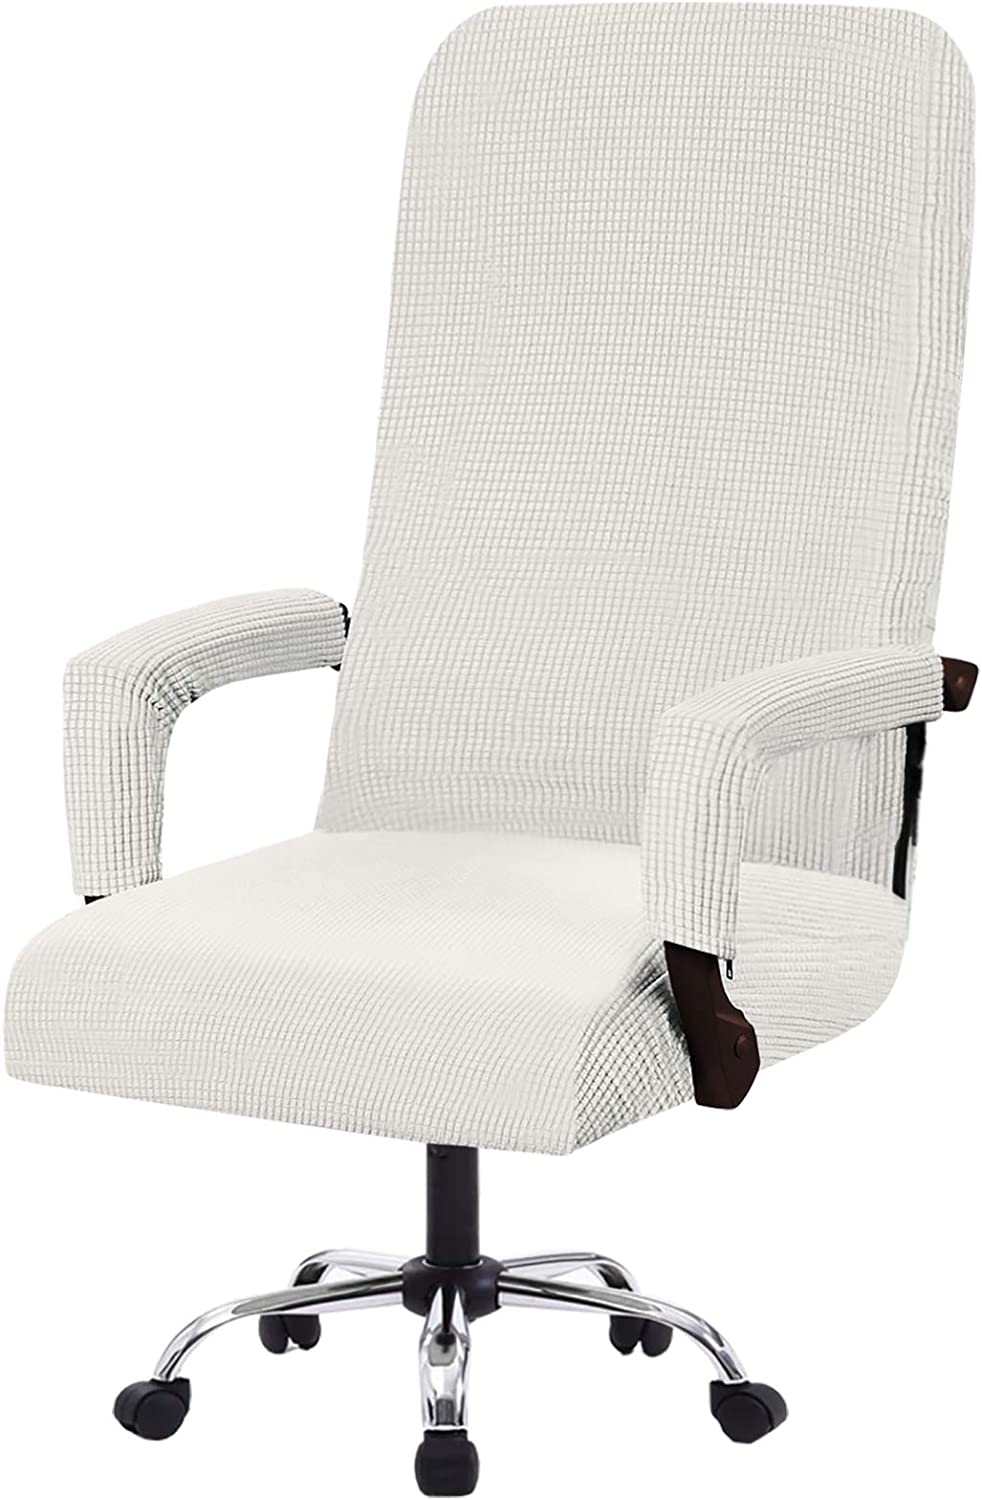 Flamingo P Stretch Office Chair Covers Computer Chair Universal Chair Cover Slipcovers Contemporary High Back Office Chair Covers, Thick Checked Jacquard, 2 Arm Covers (Off White, Large)